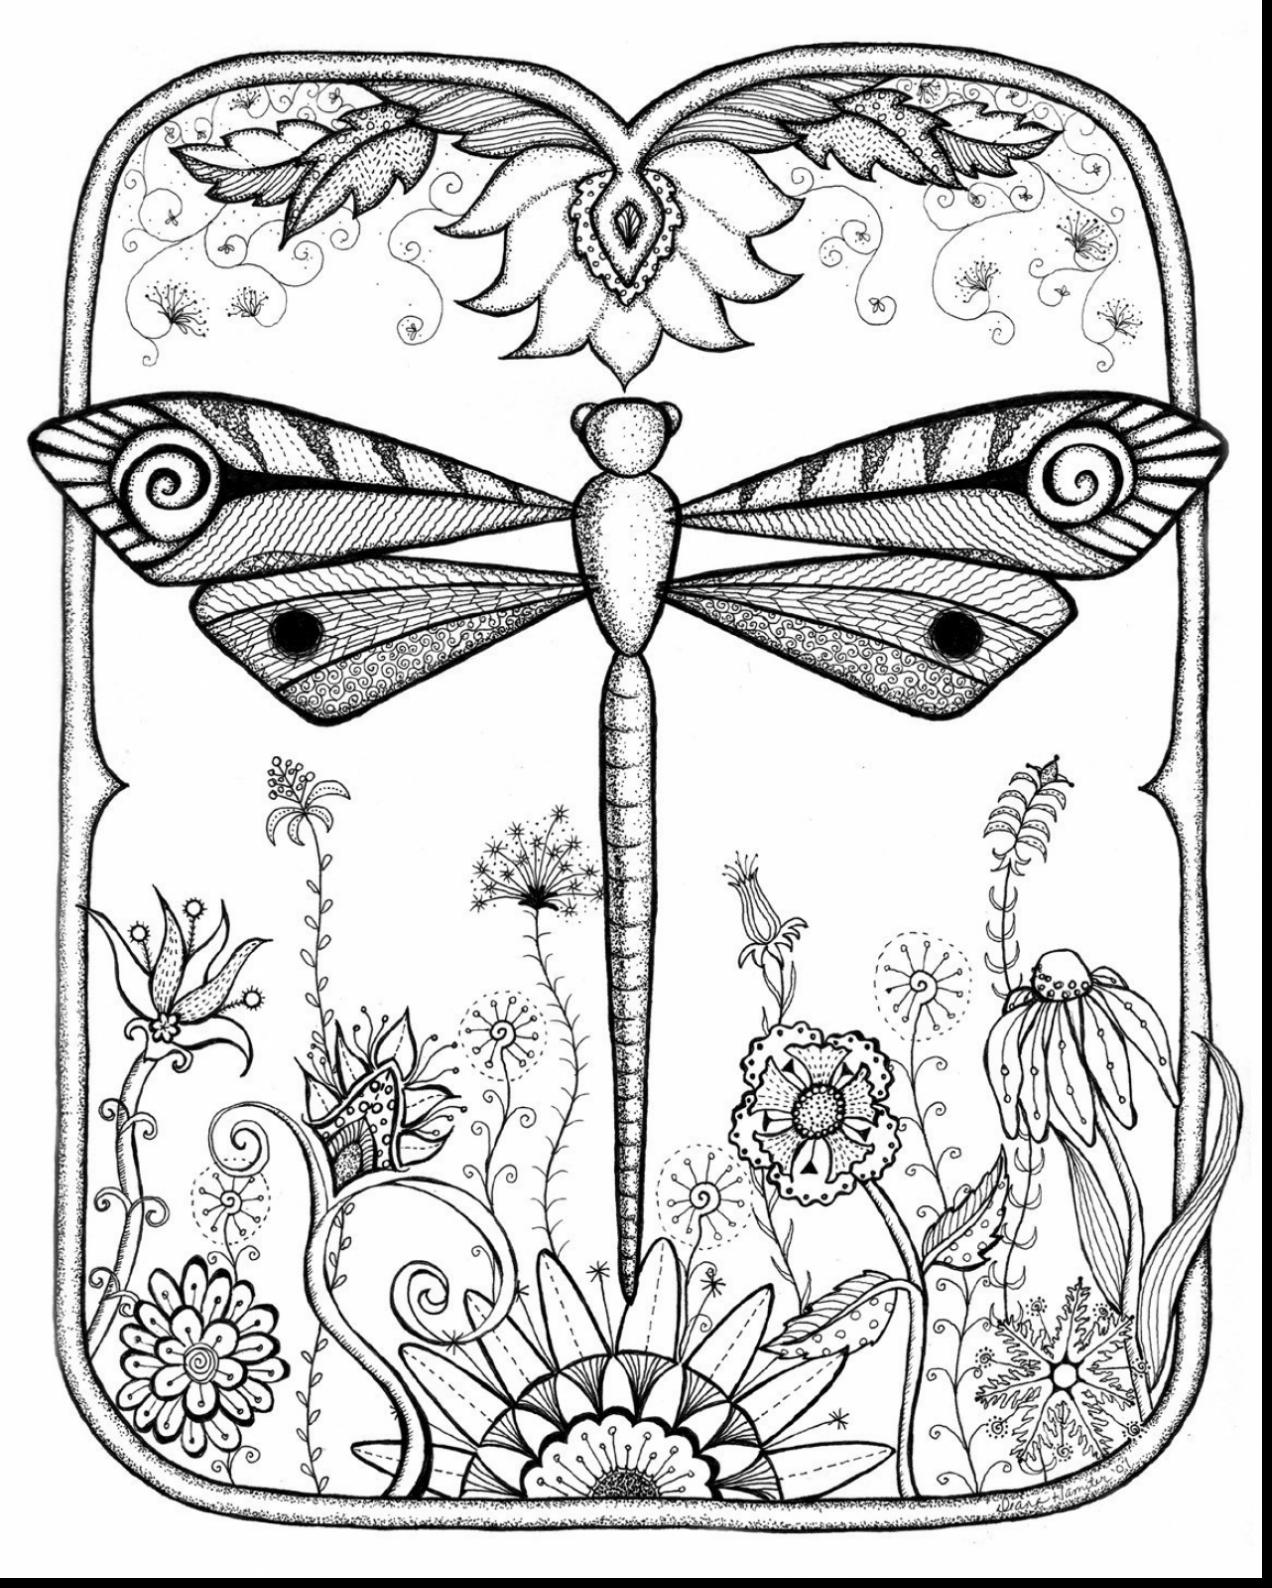 Dragonfly coloring #20, Download drawings